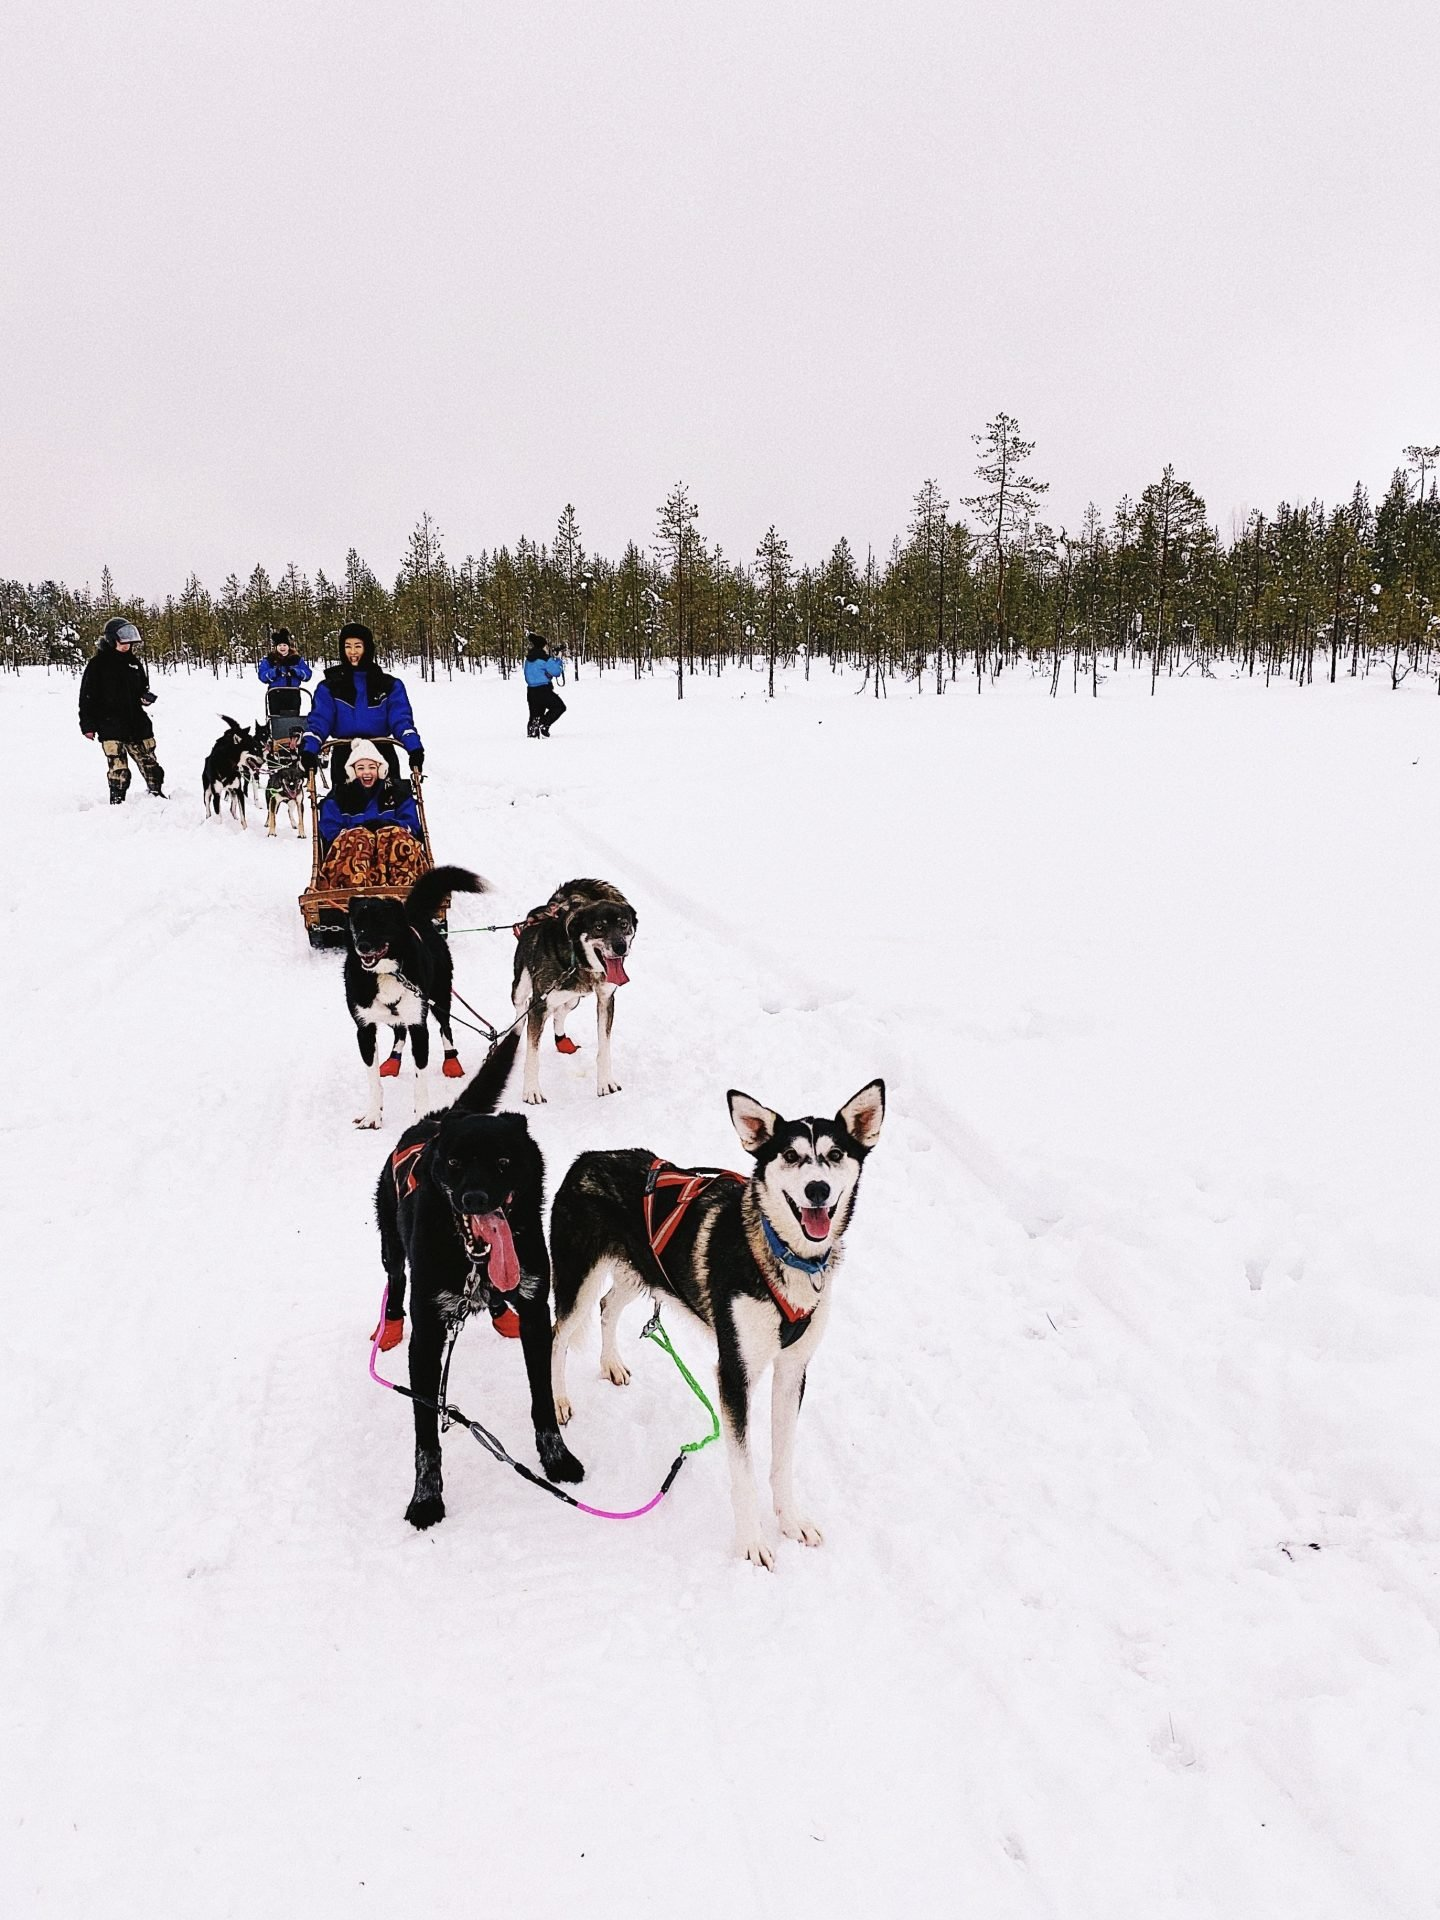 Travel guide to Lapland, Finland and Rovaniemi, Finland with Bearhill Husky Ride